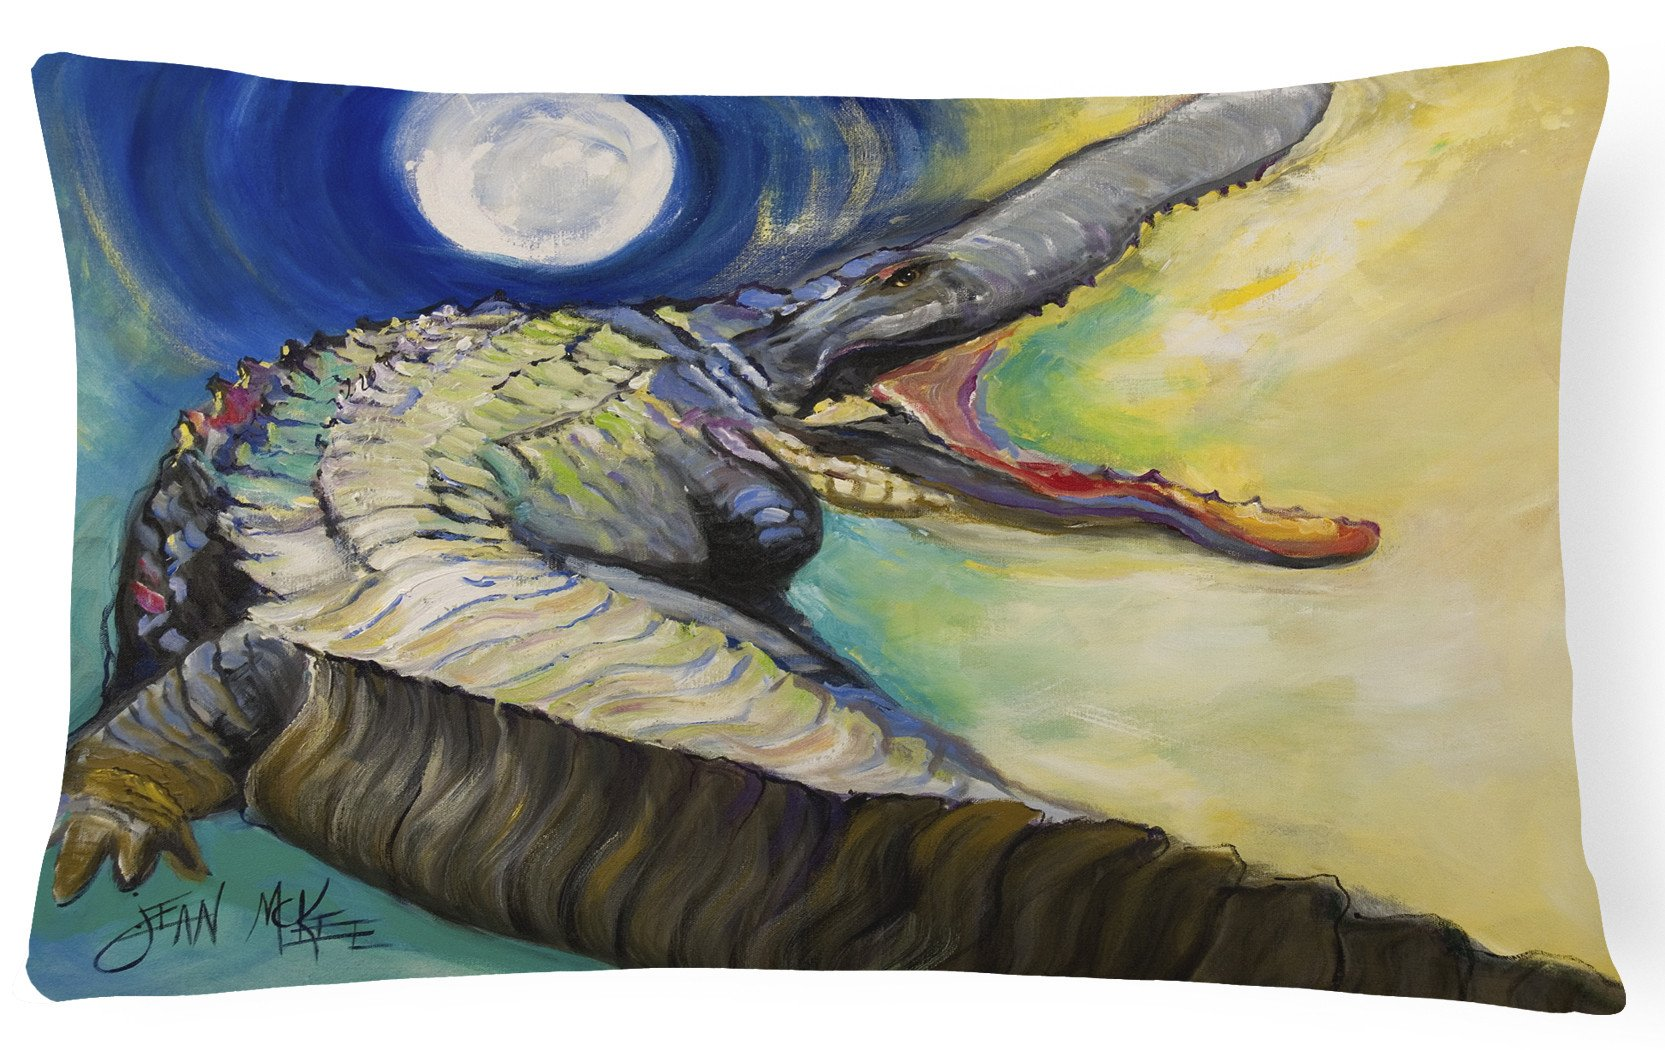 Alligator Canvas Fabric Decorative Pillow JMK1004PW1216 by Caroline's Treasures